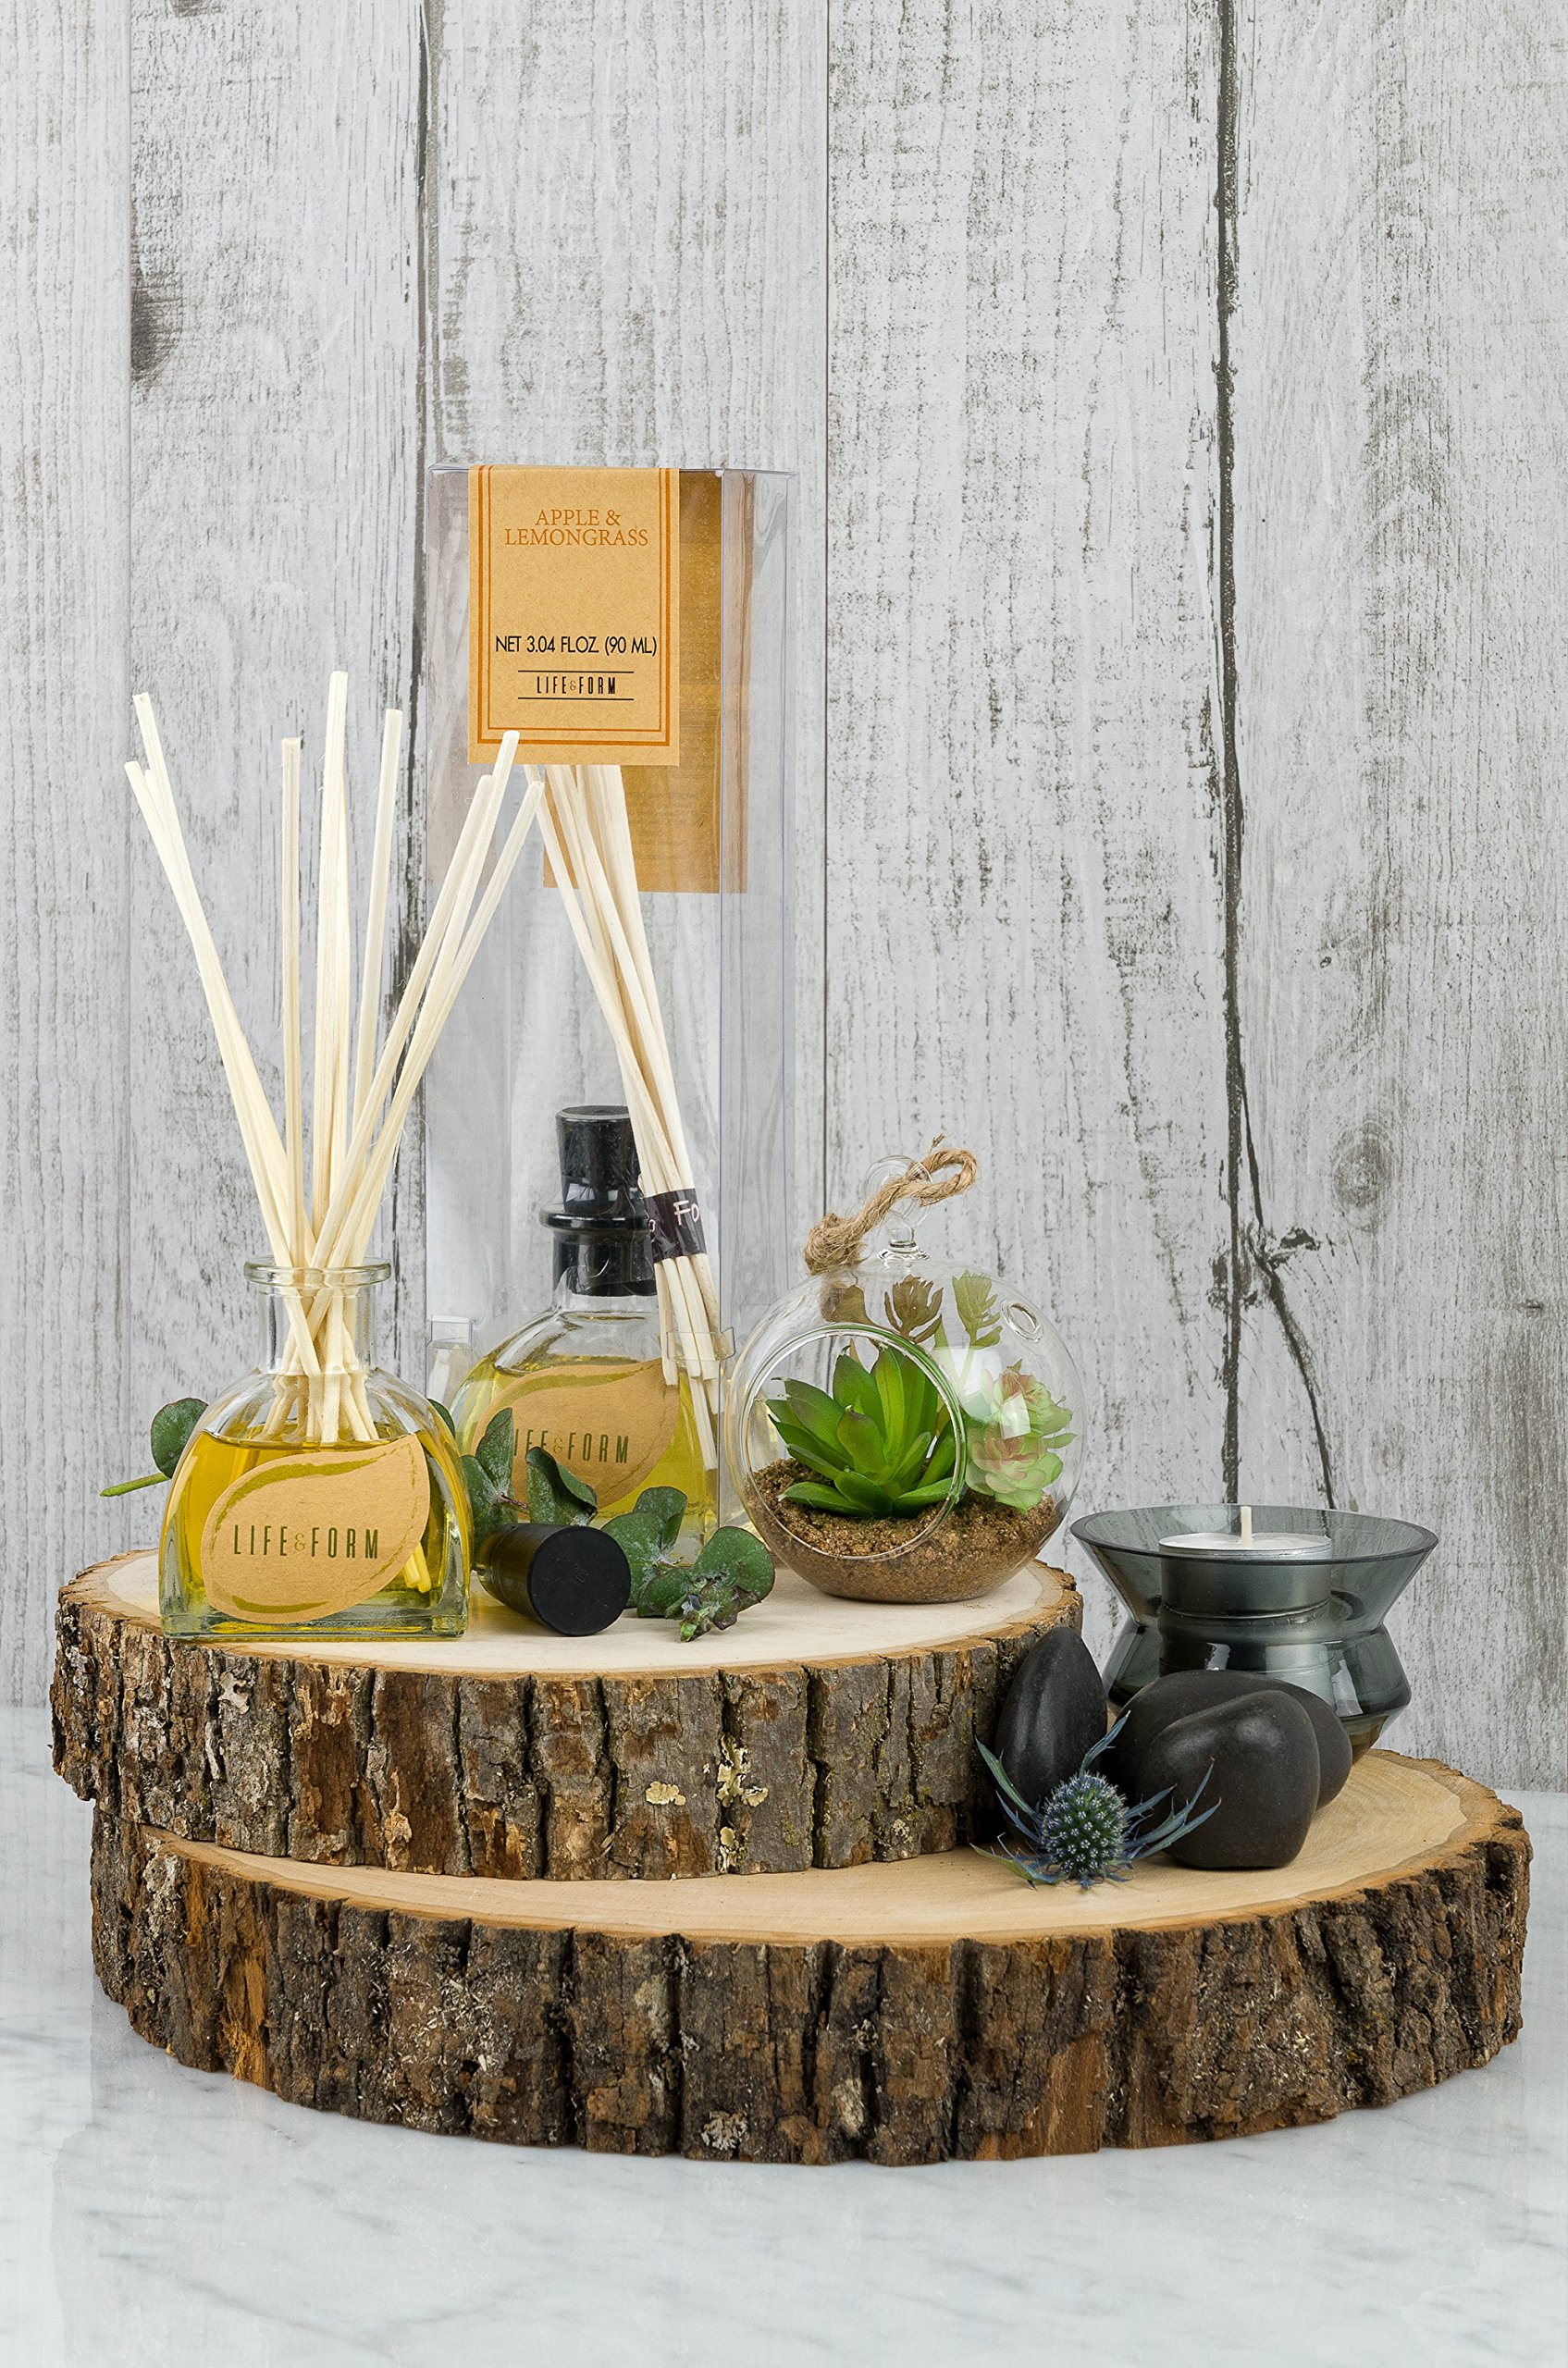 Life & Form Ocean Reed Diffuser Grand (3.38 fl.oz.) | Home Fragrance | by Life & Form (Image #3)